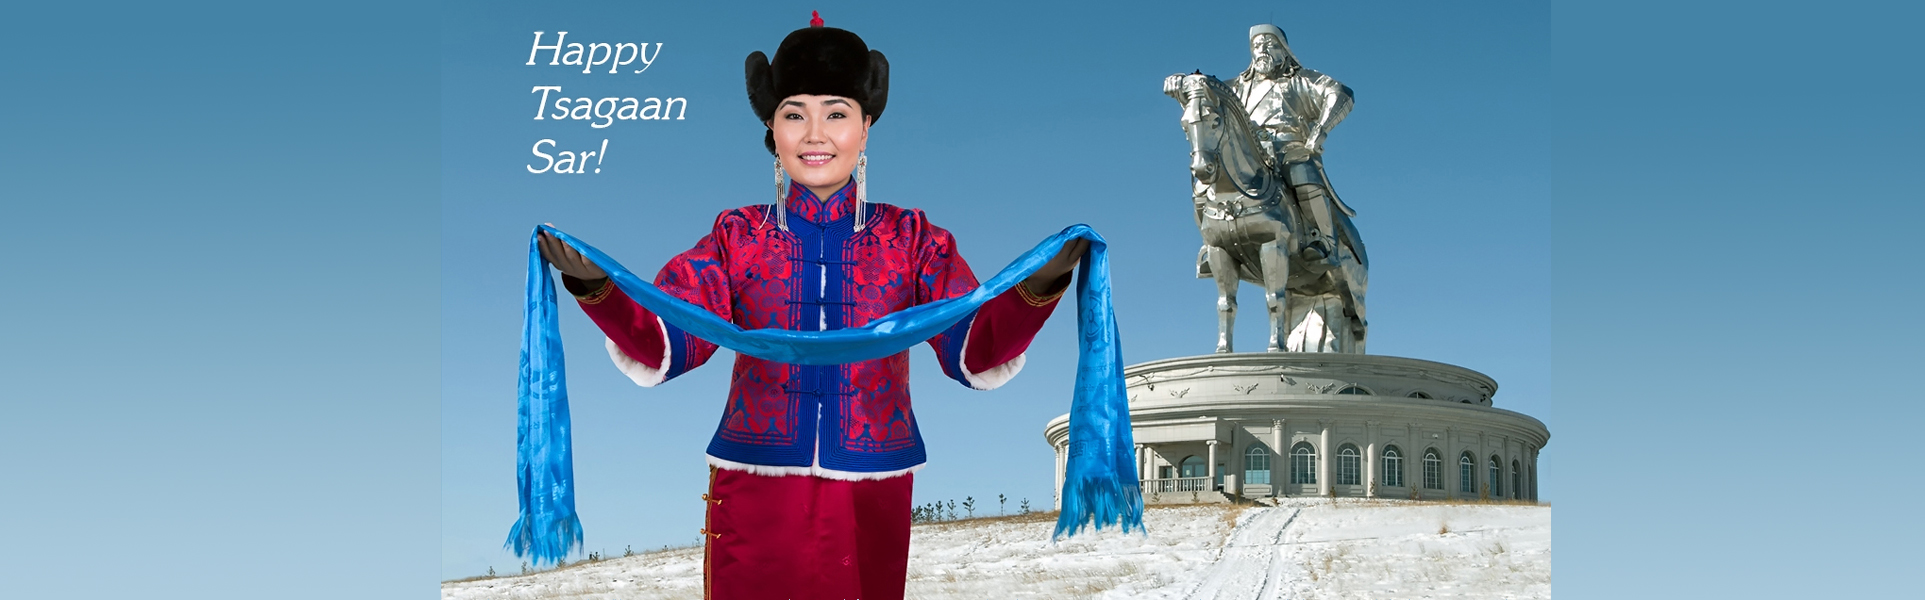 lunar_new_year_mongolia